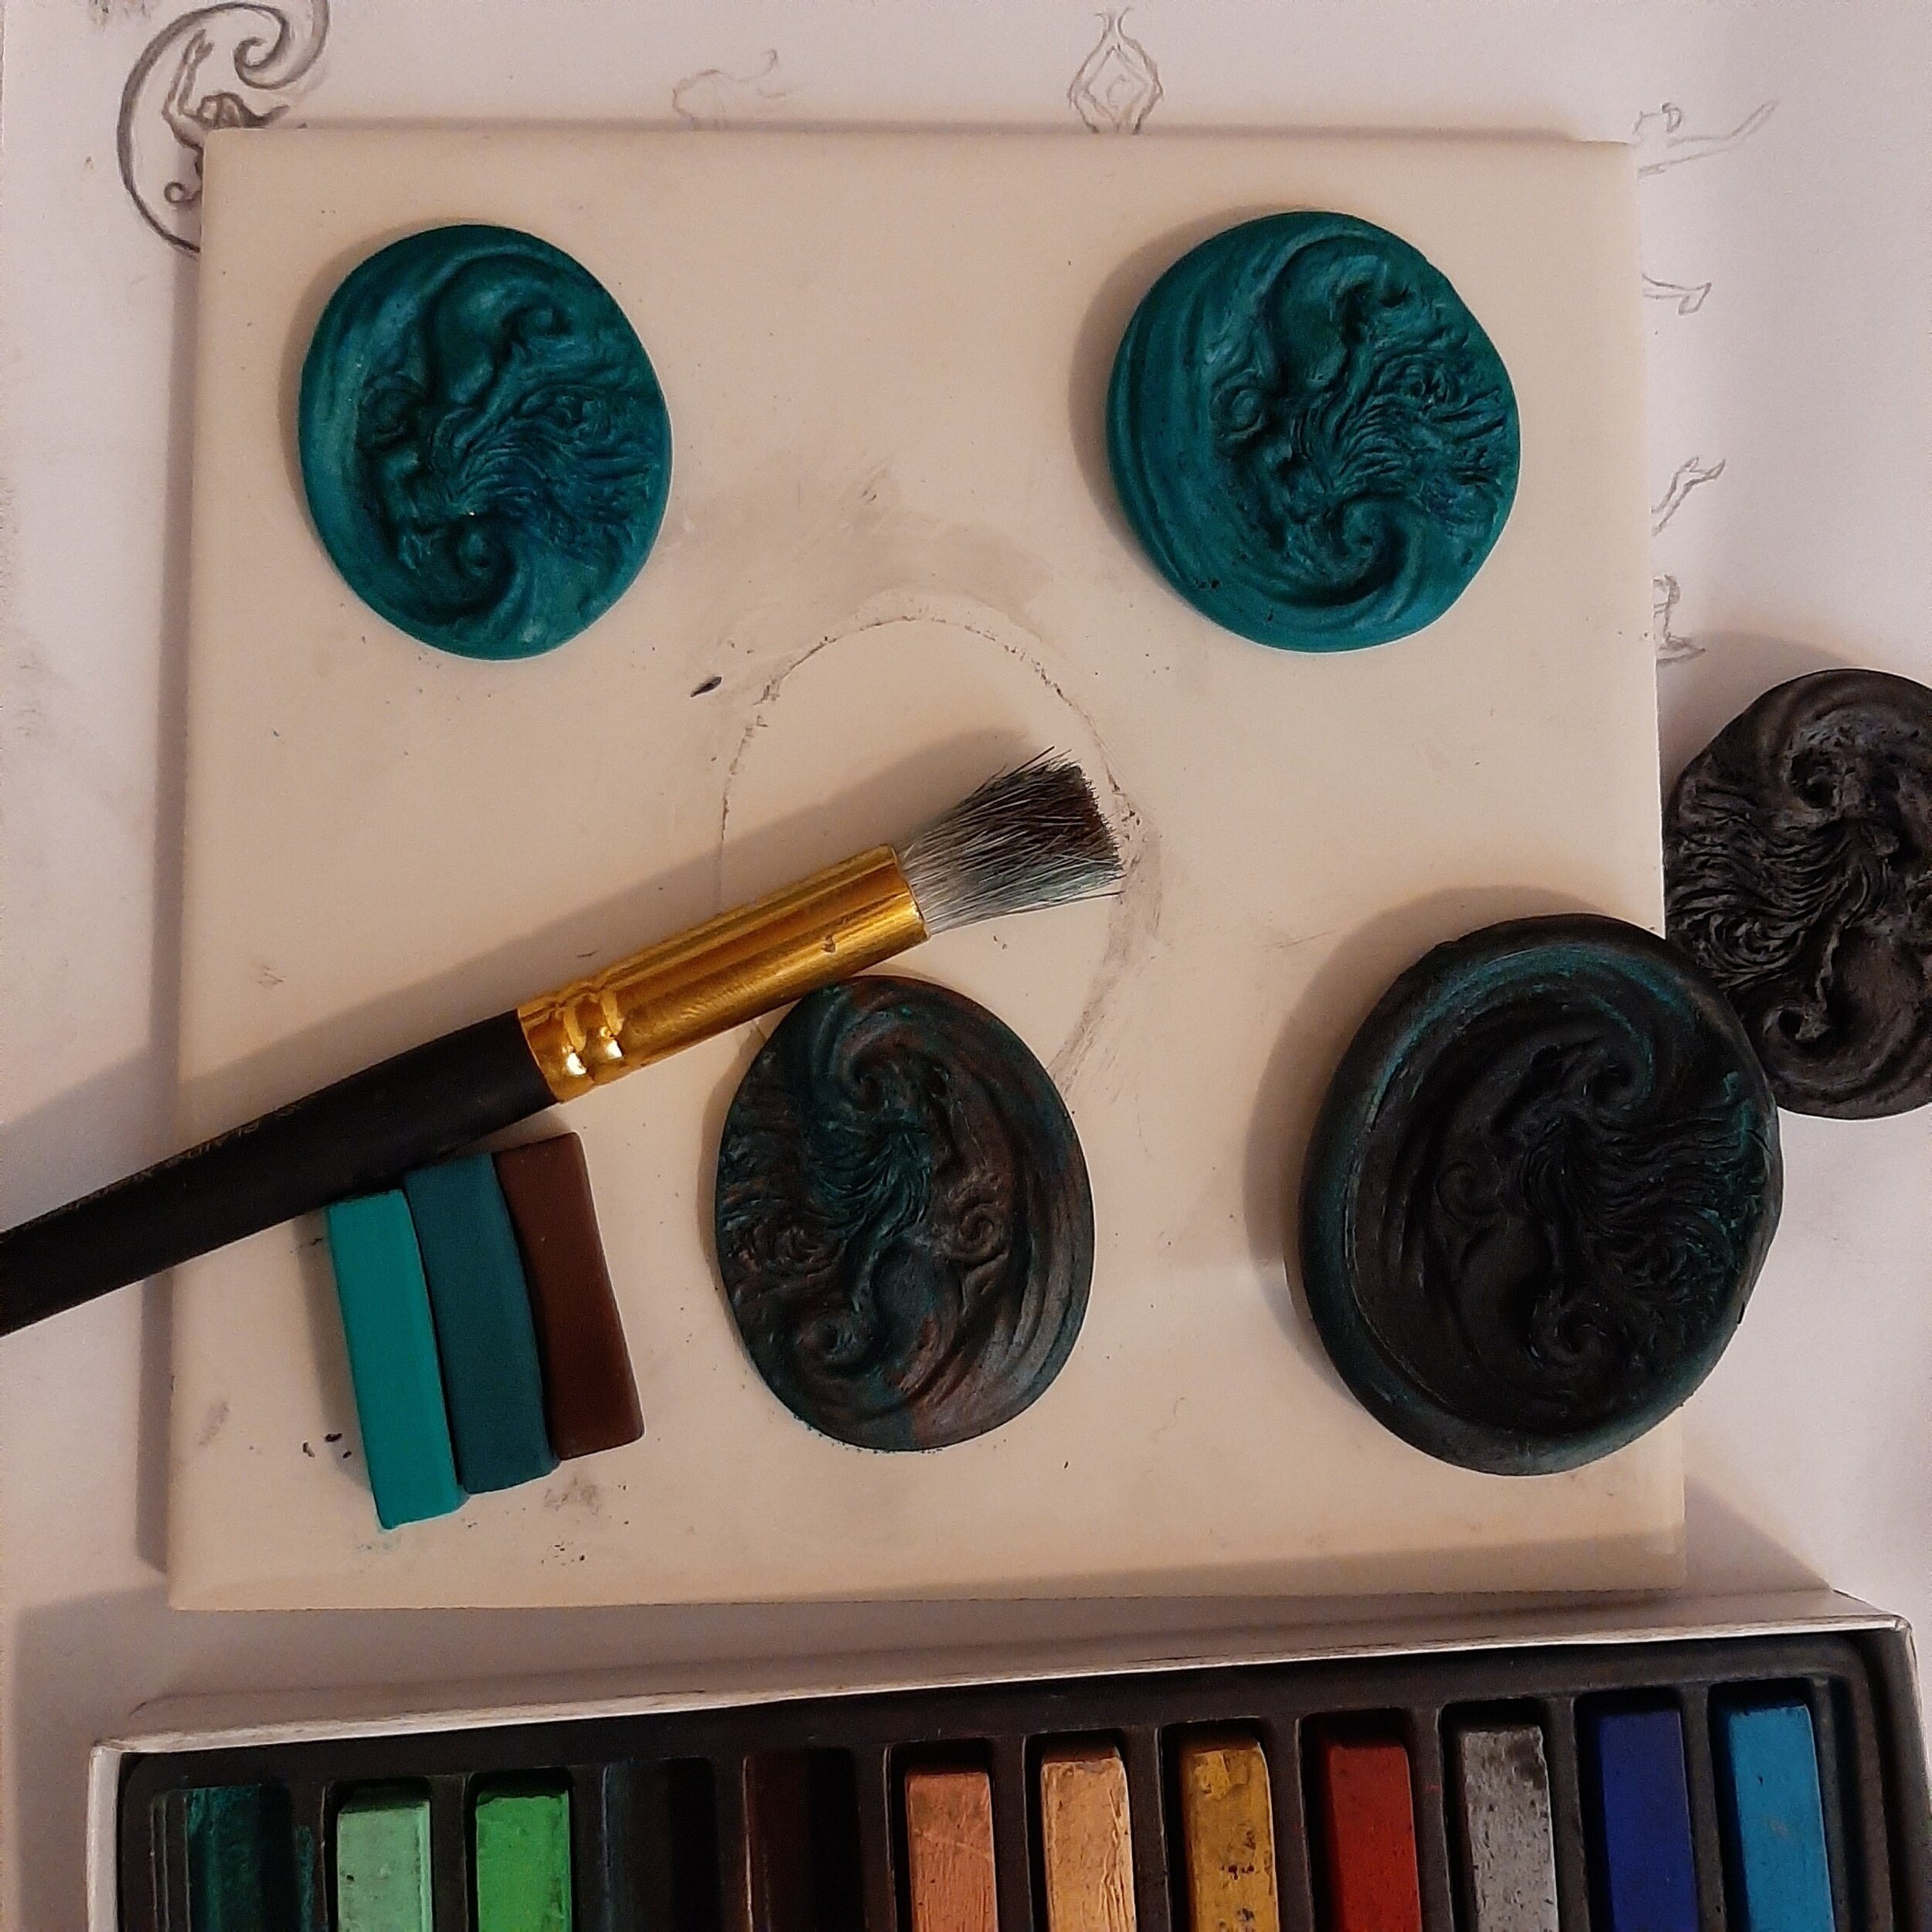 Make Copies - Once you've baked and cooled the mold, you can use more chalk pastels and clay to create copies of your original. I like to start with colors that evoke a copper patina, as I'll be adding copper tones on top.